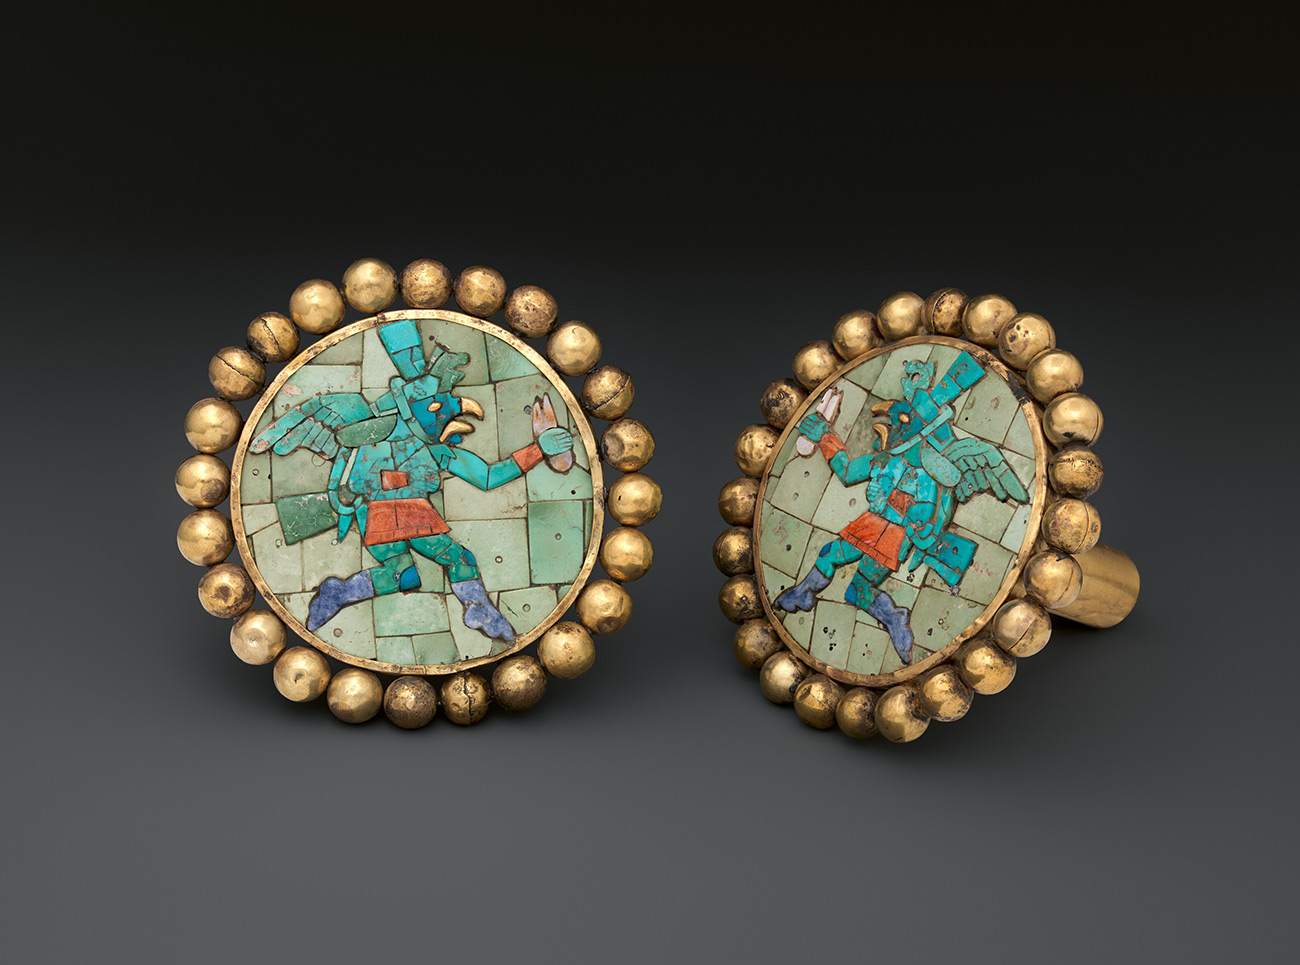 Pair of stone-and-gold ear ornaments in the shape of warriors